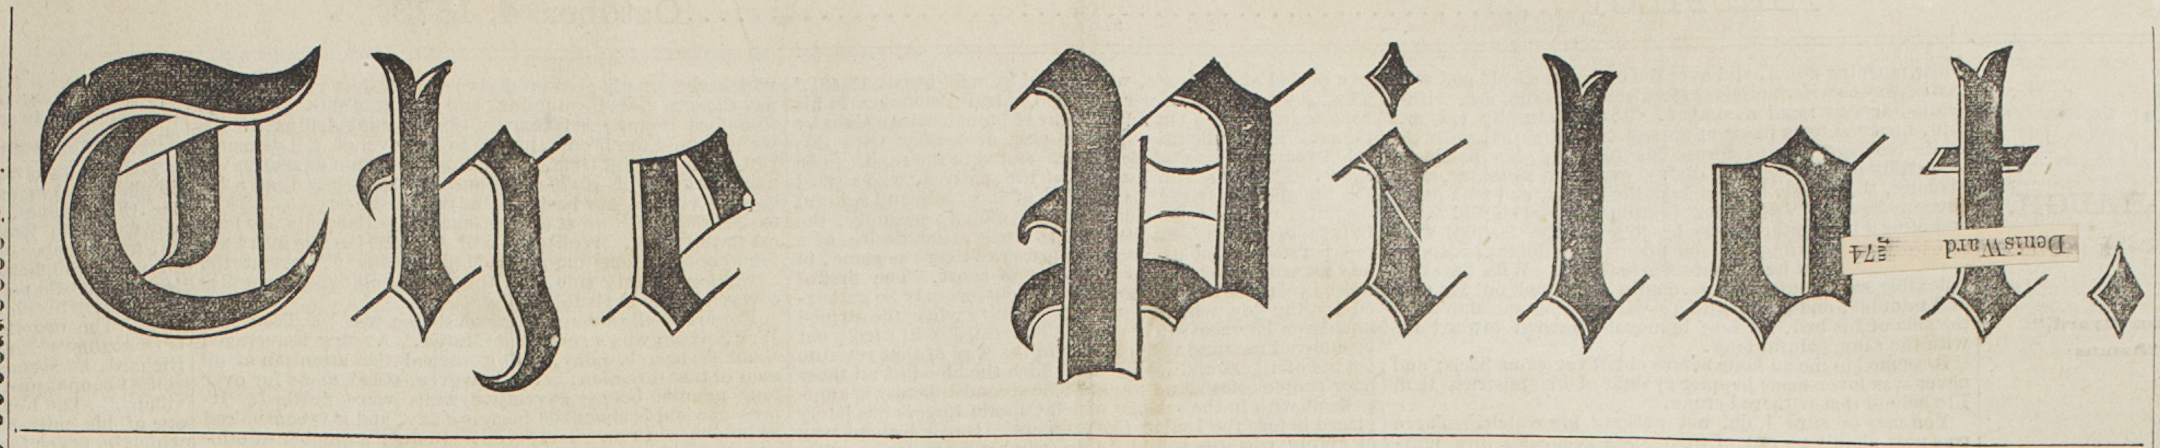 Masthead for older issue of the Pilot Newspaper